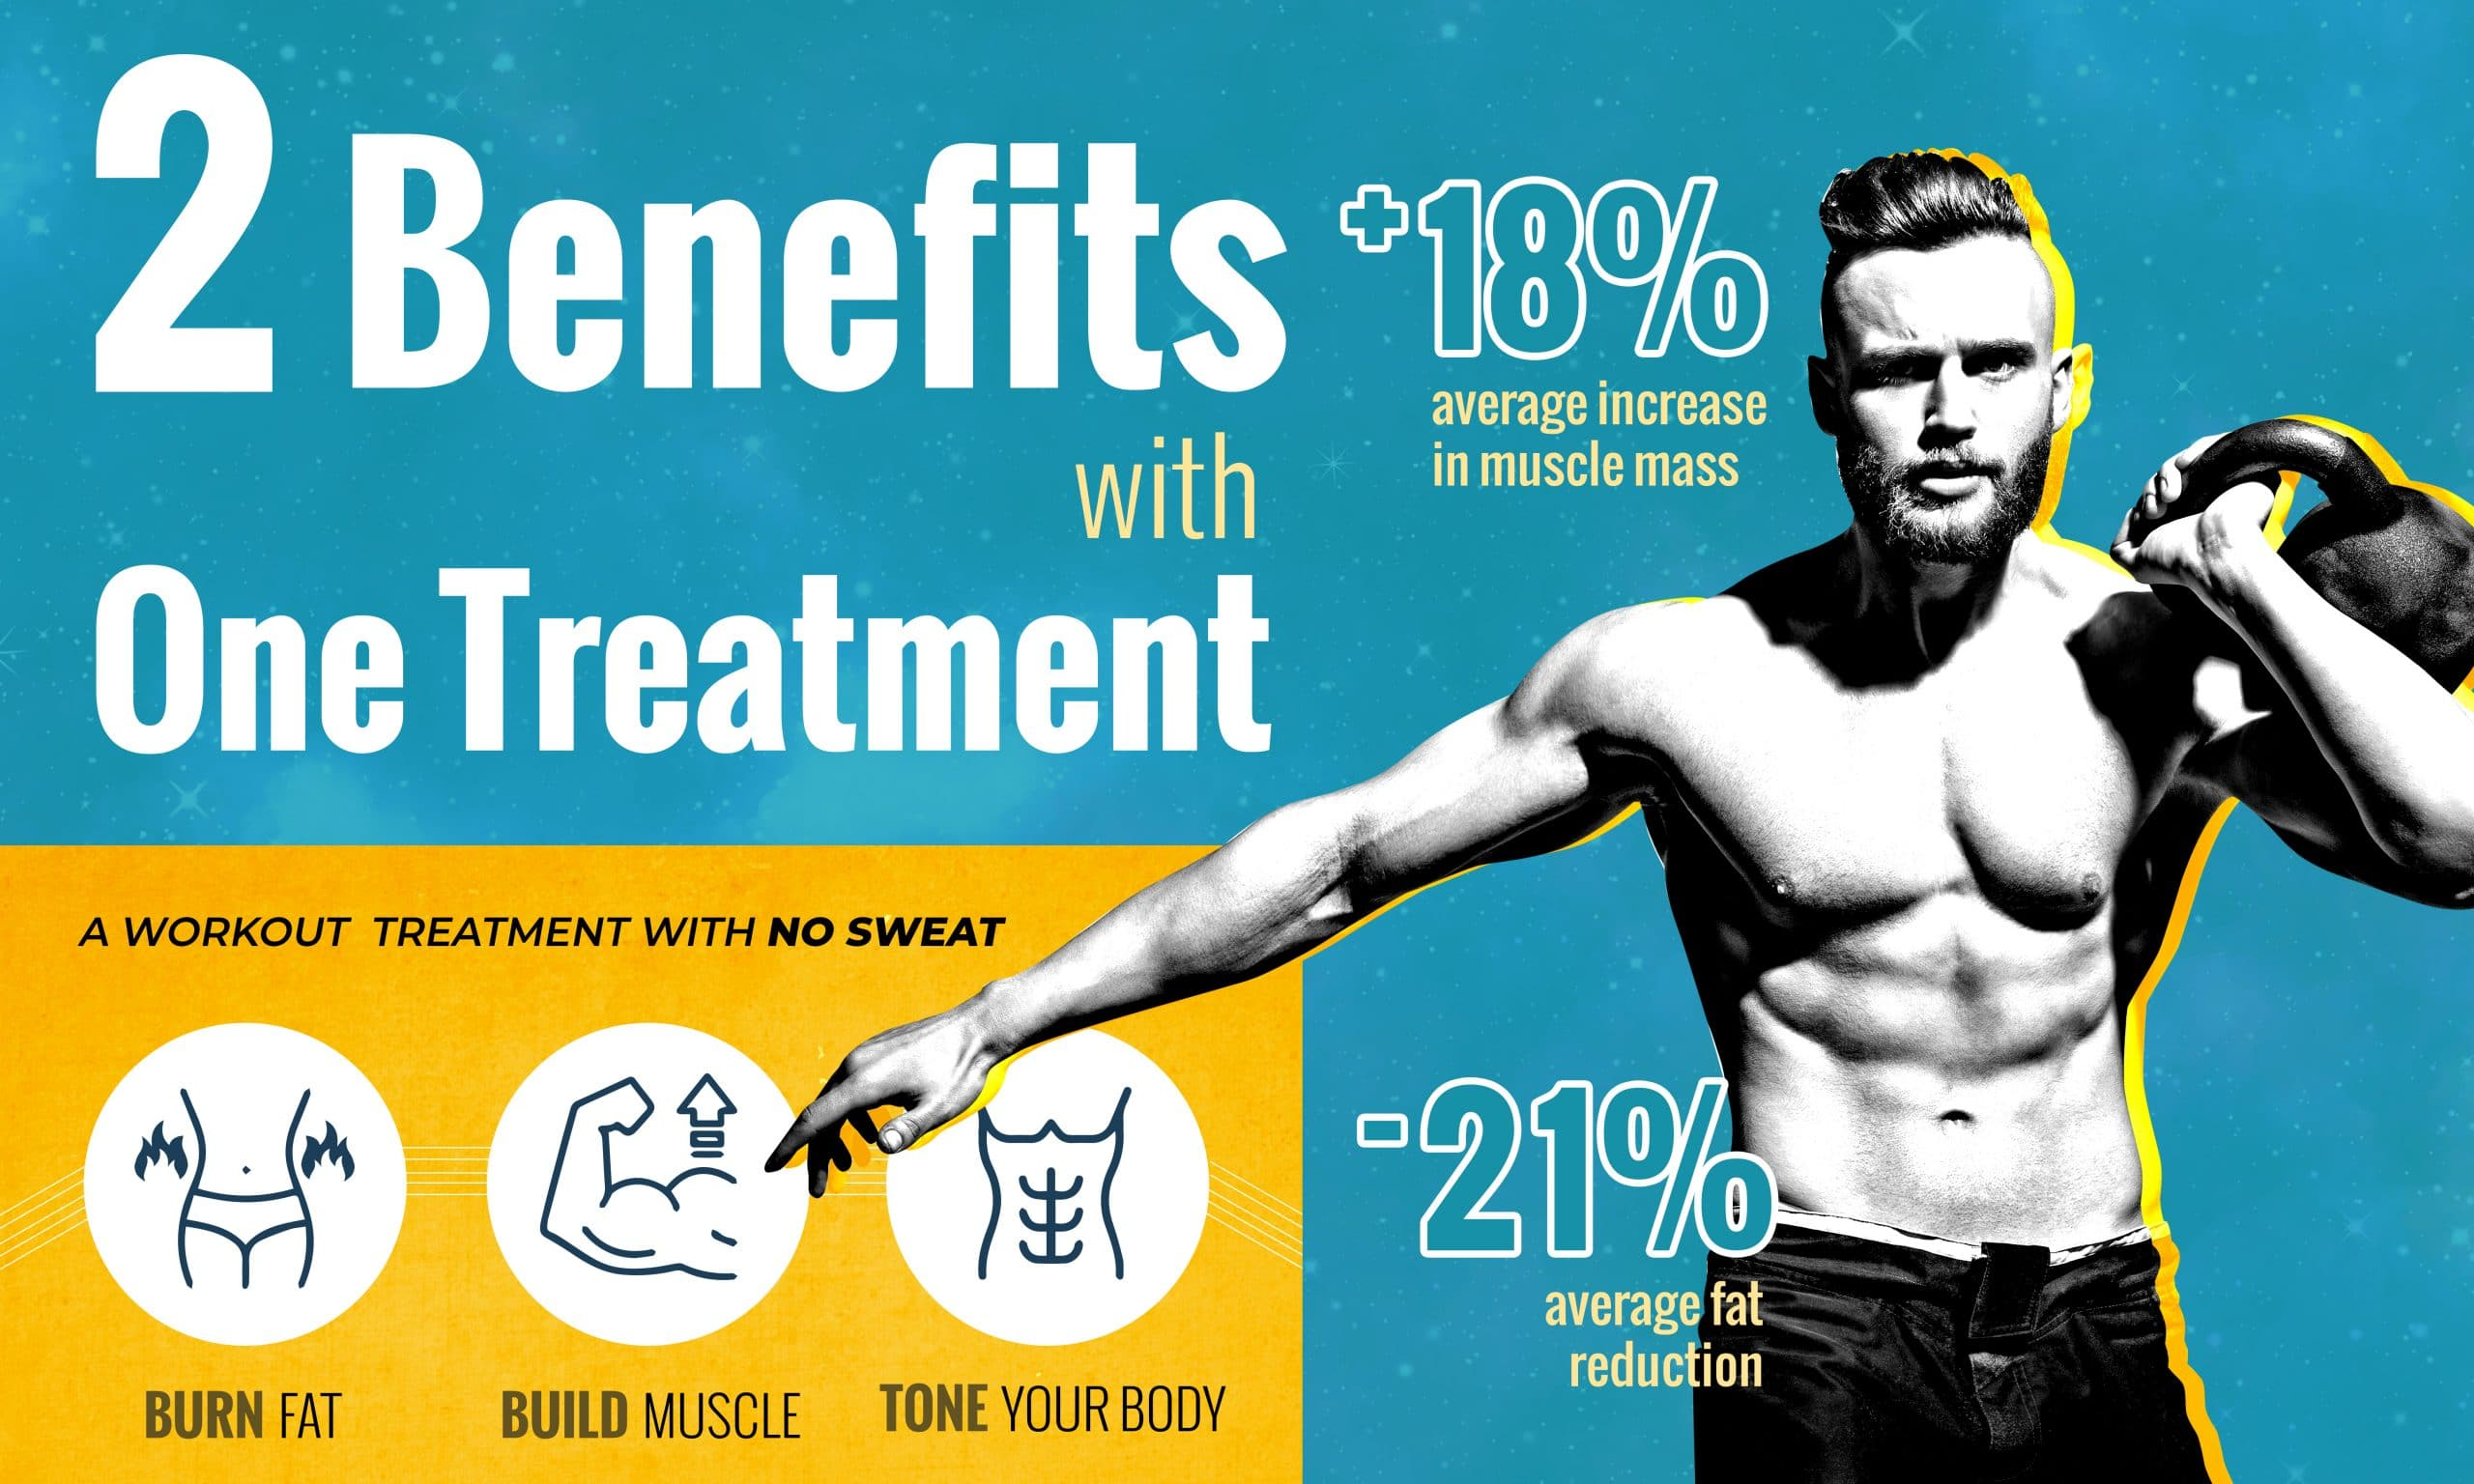 A Workout Treatment With No Sweat